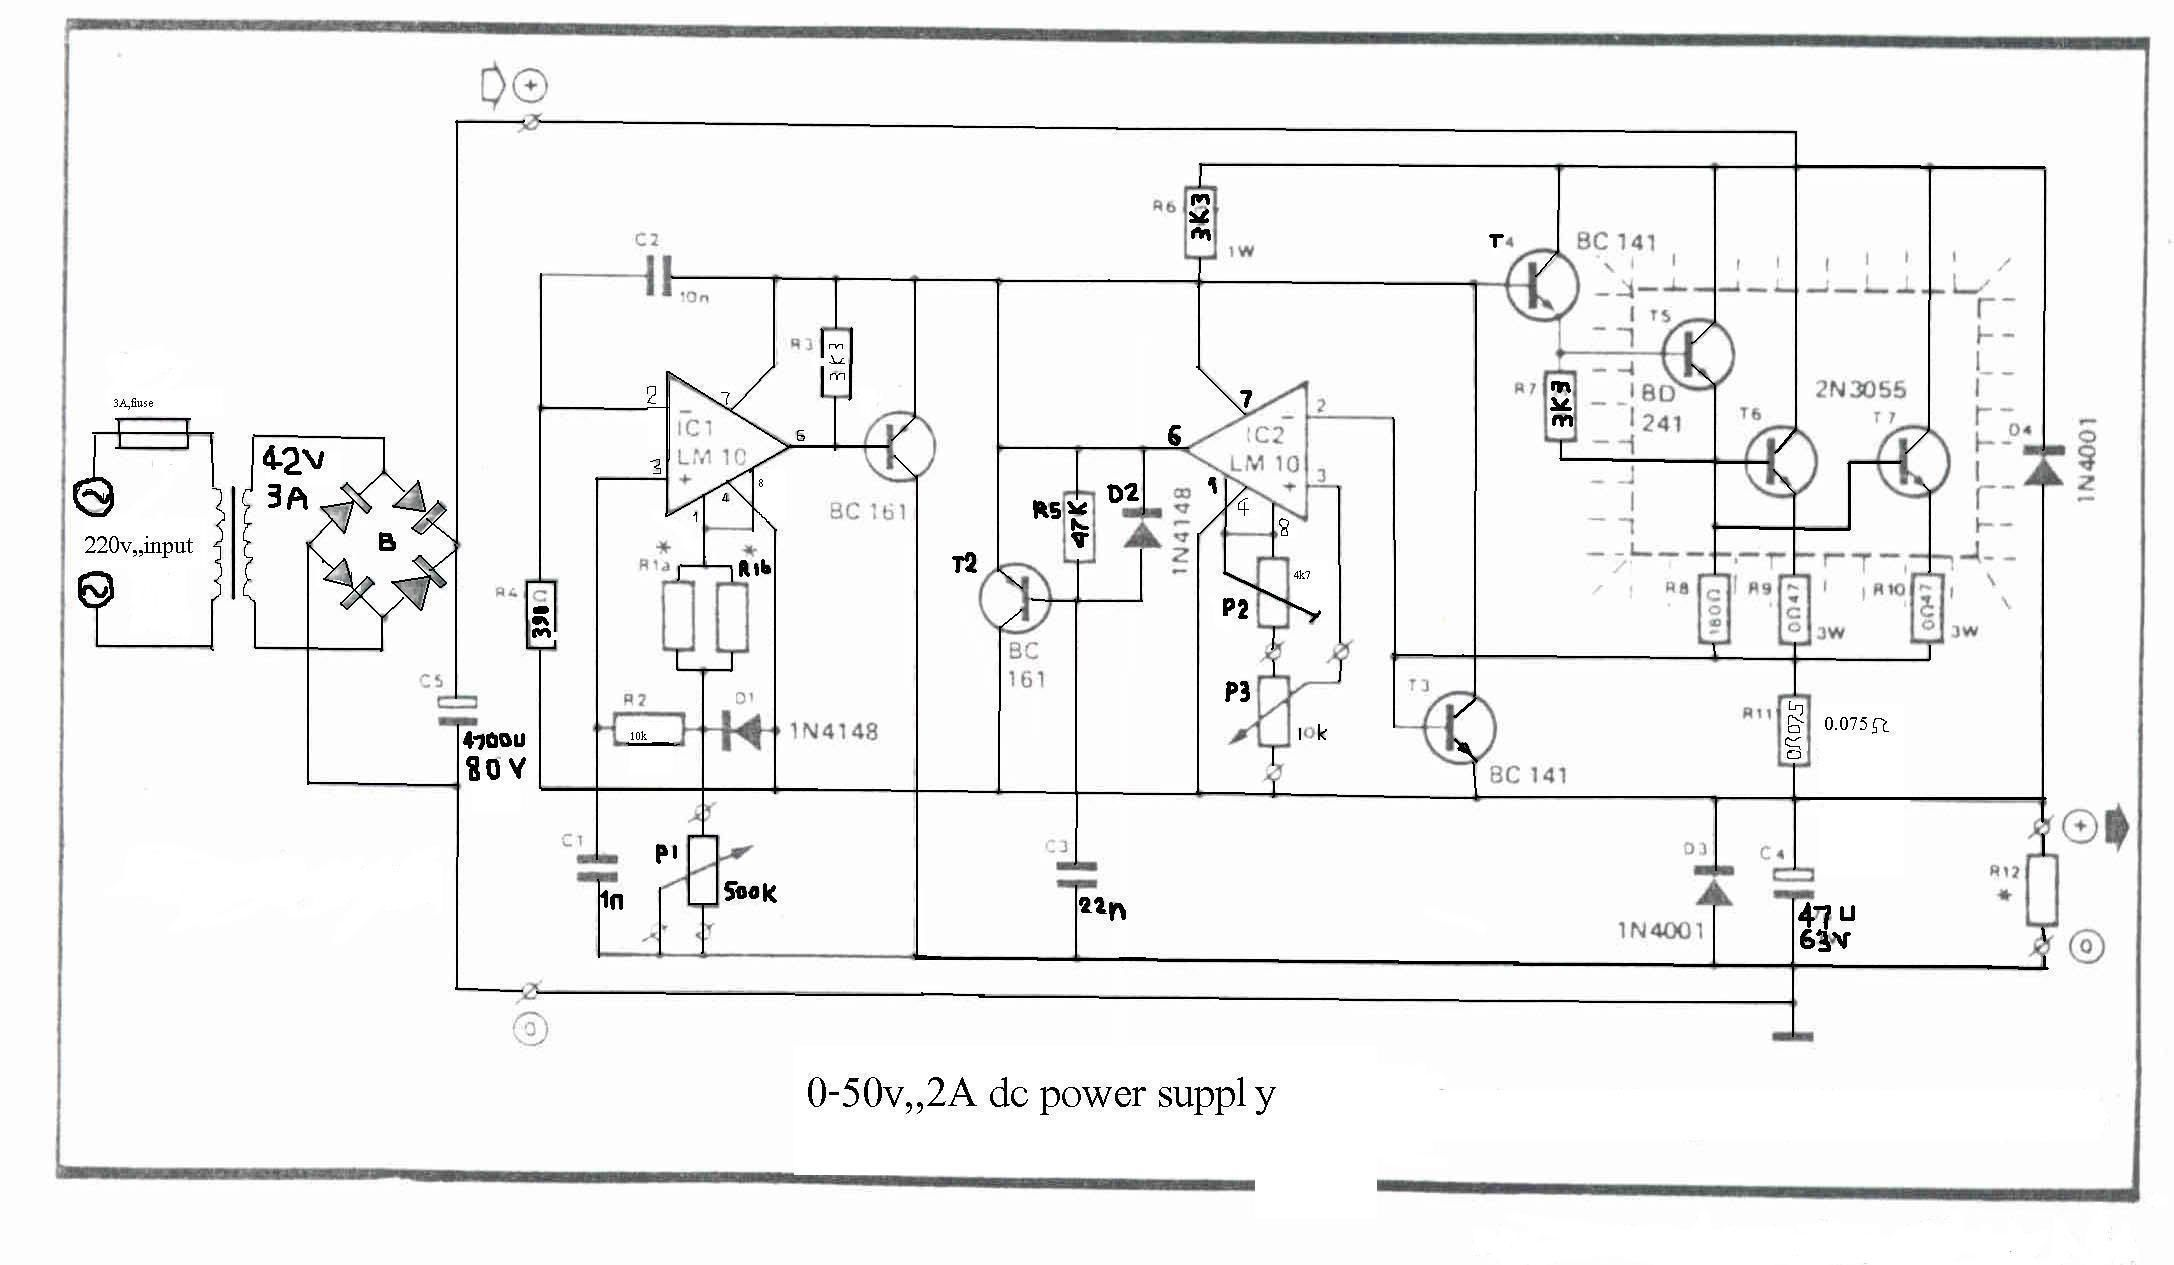 medium resolution of 0 50v 2a bench power supply electronics lab